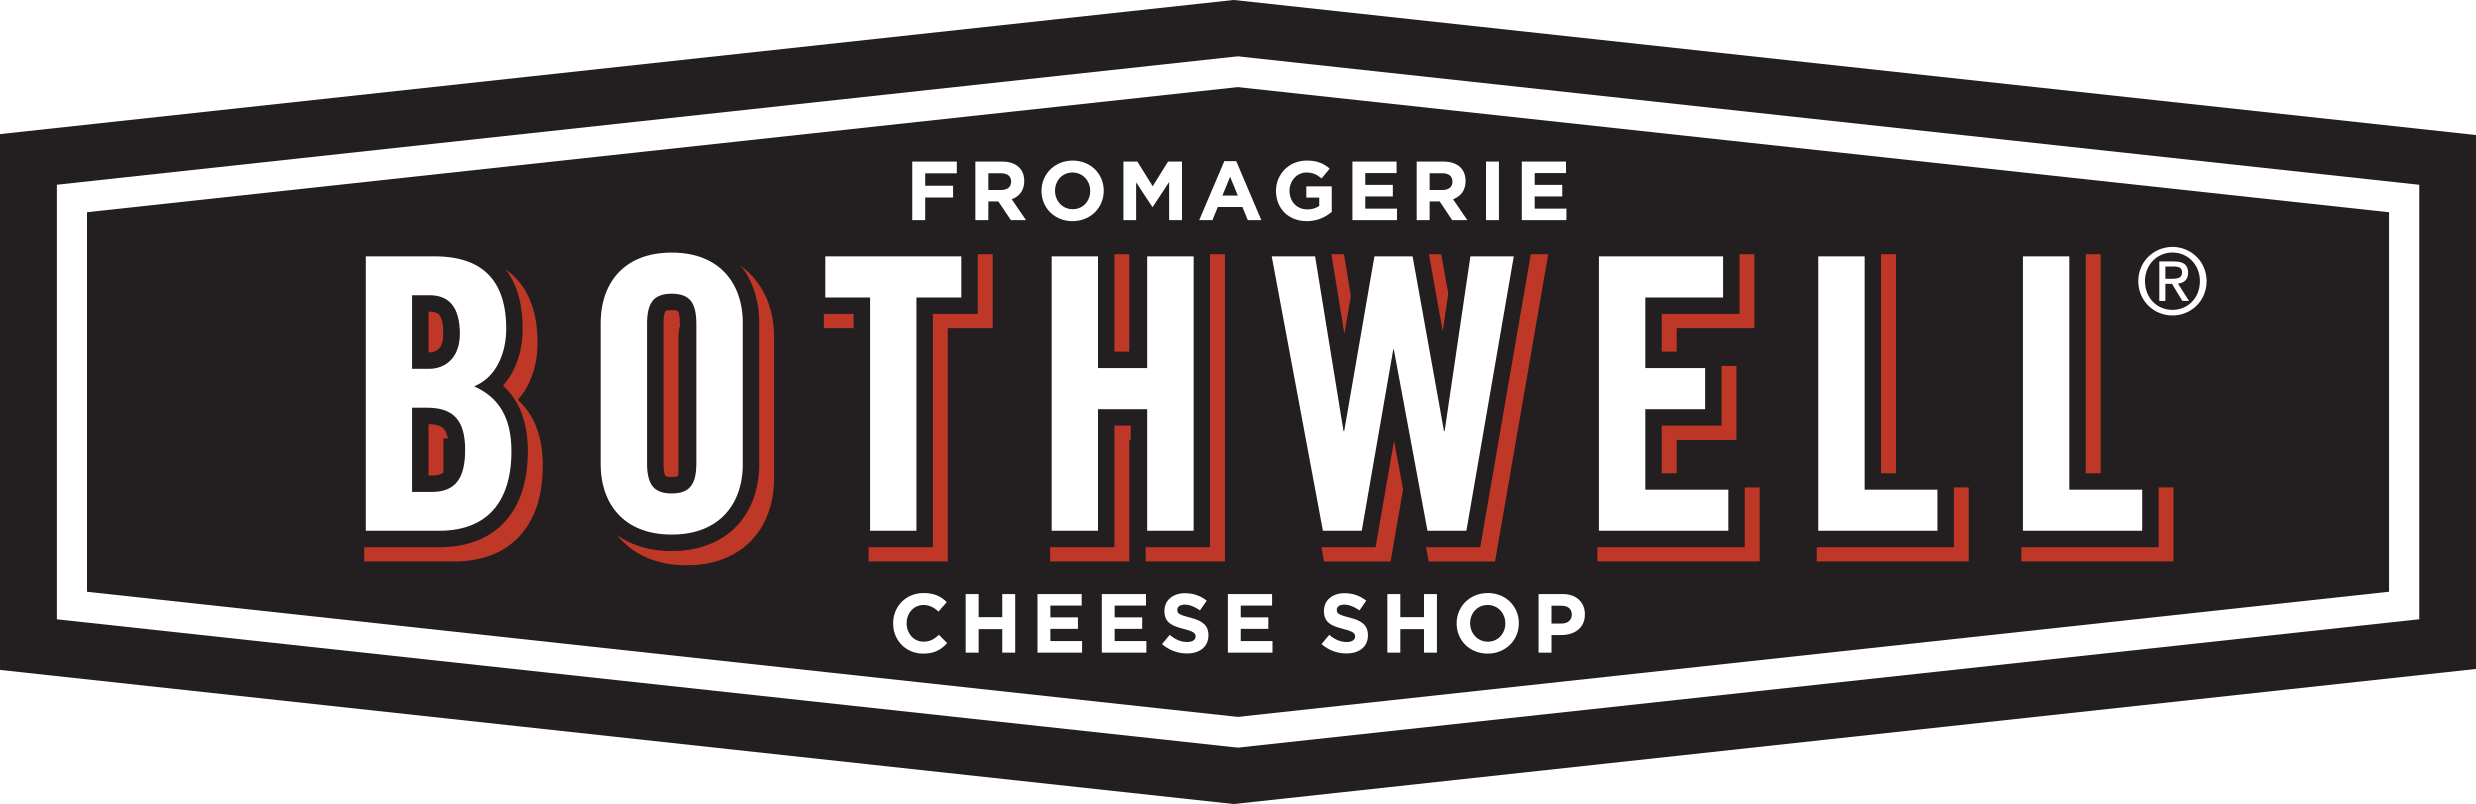 Fromagerie Bothwell